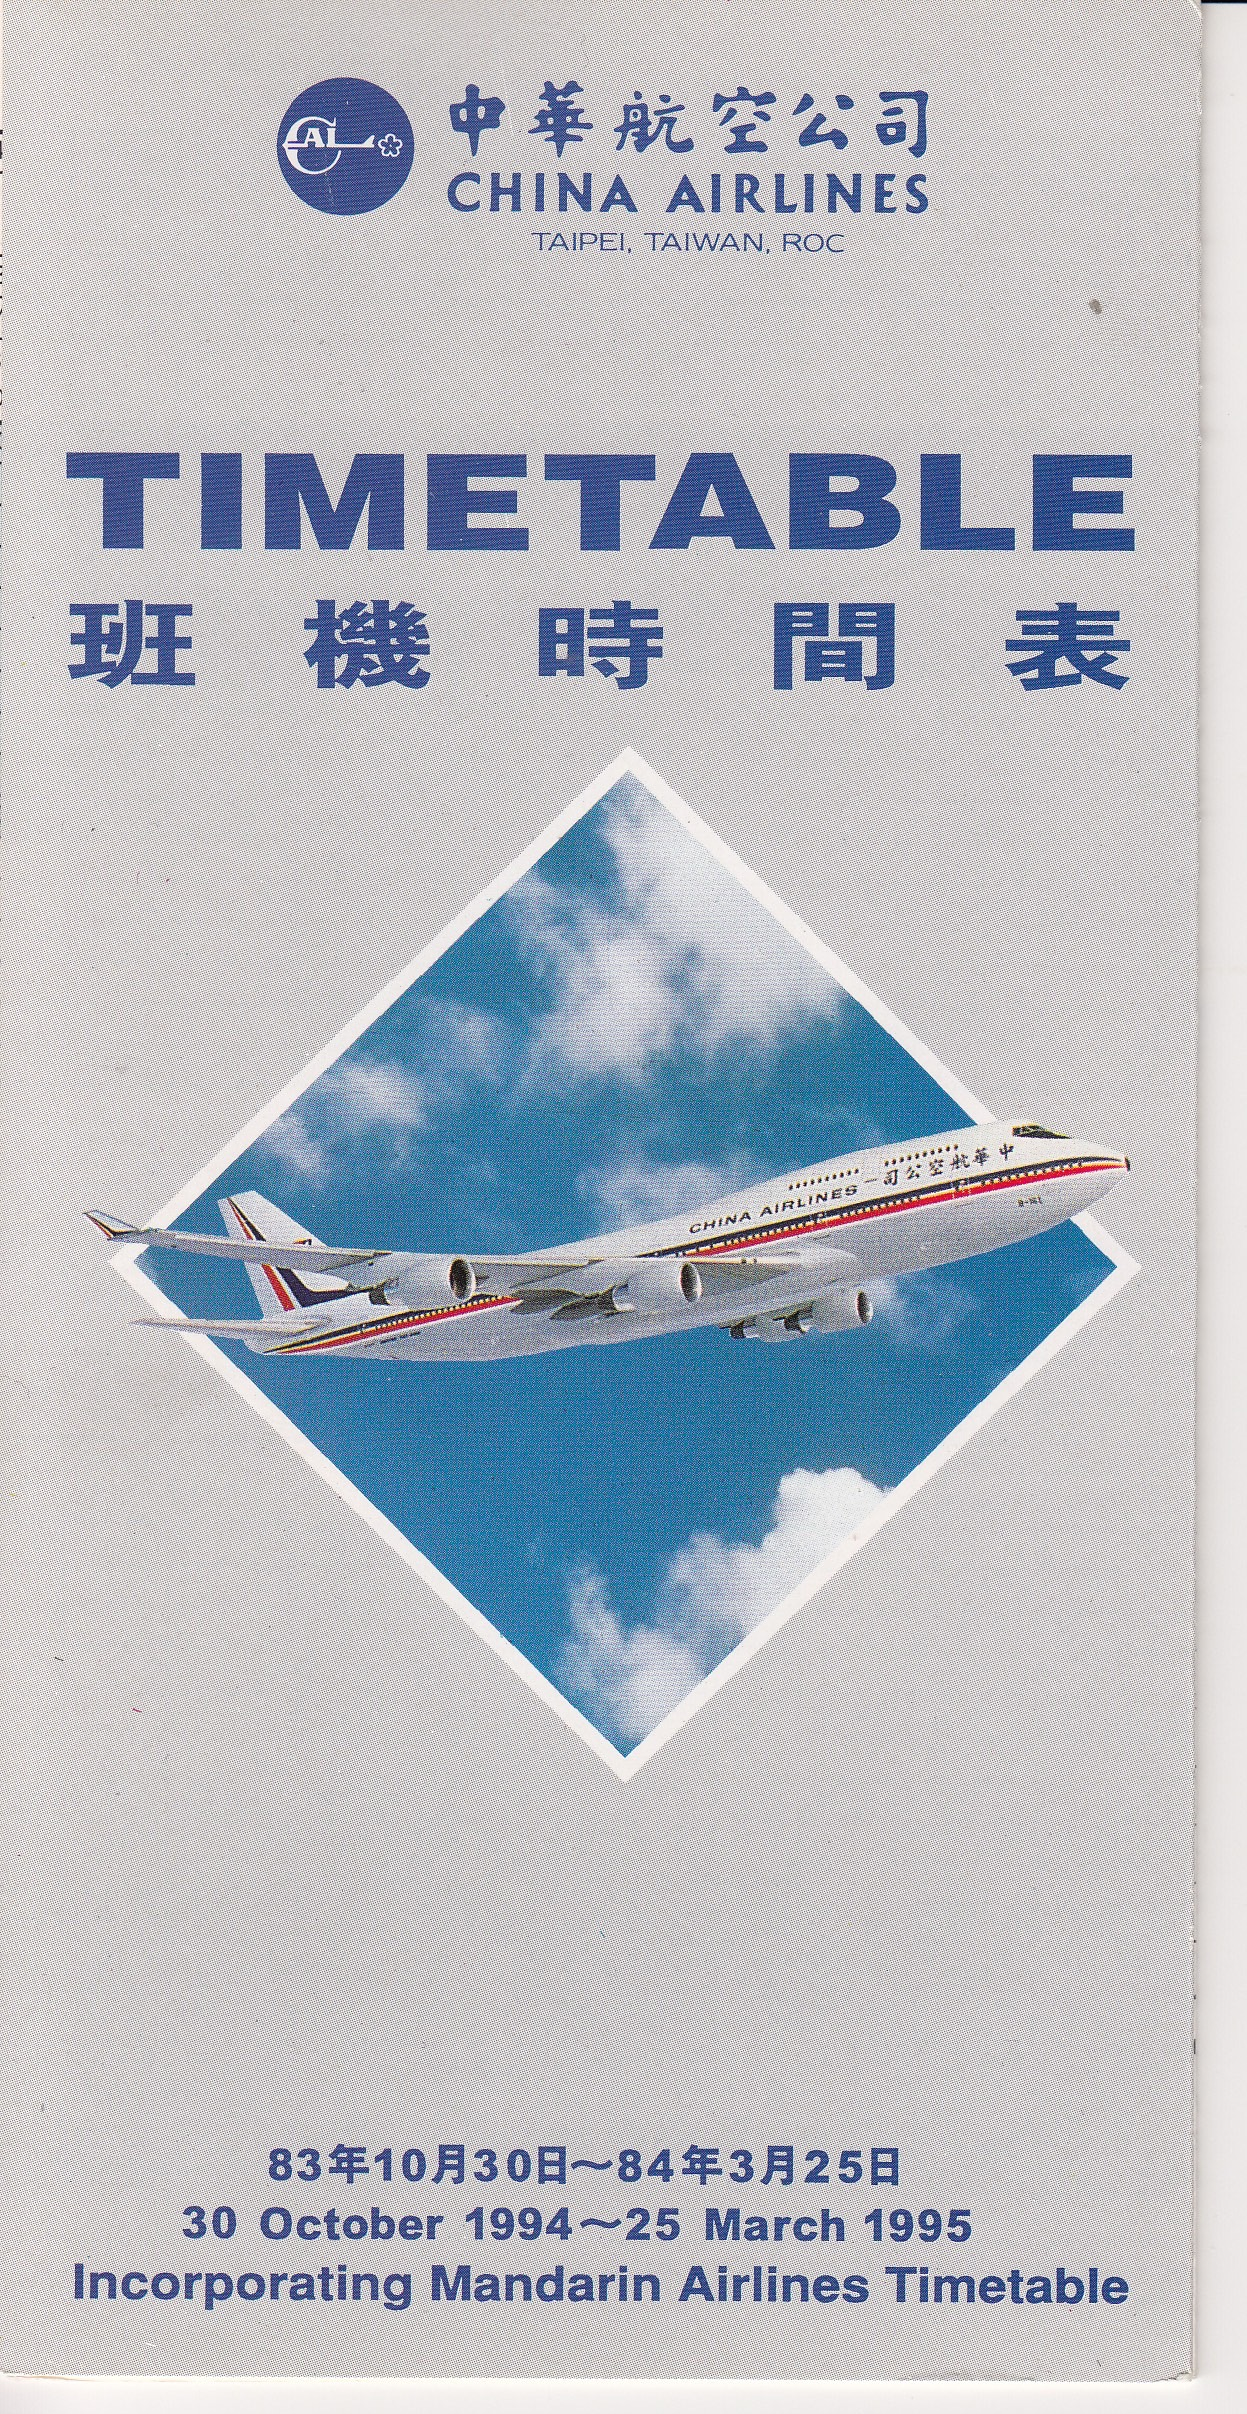 China Airlines Timetable Oct9 4-Mar 95